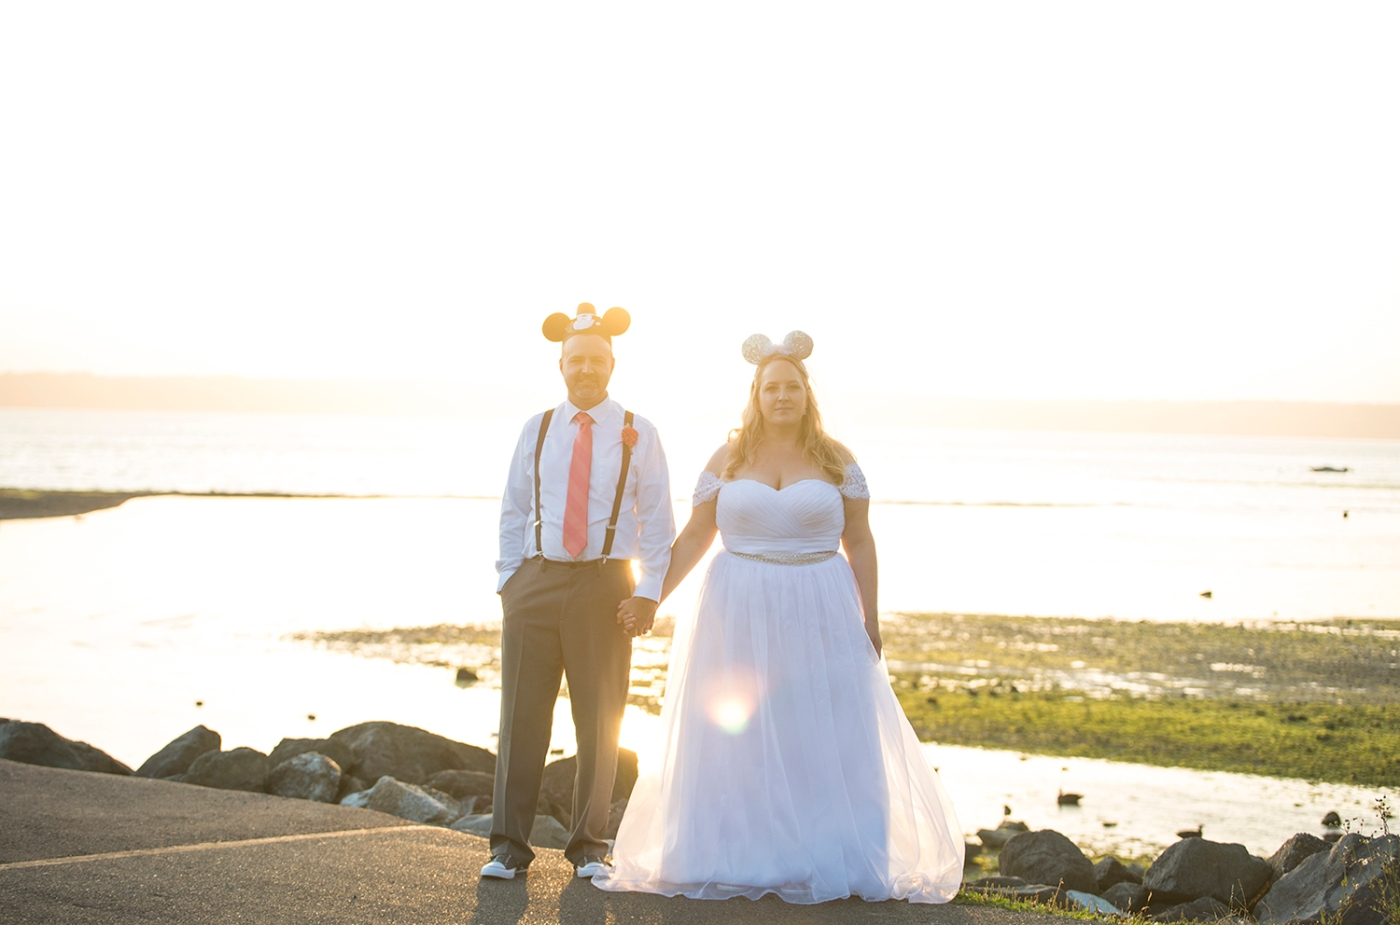 Jane_Speleers_Seattle_photography_Katie_and_Steve_2016_Des_Moines_Marina_Wedding_DSC_2429